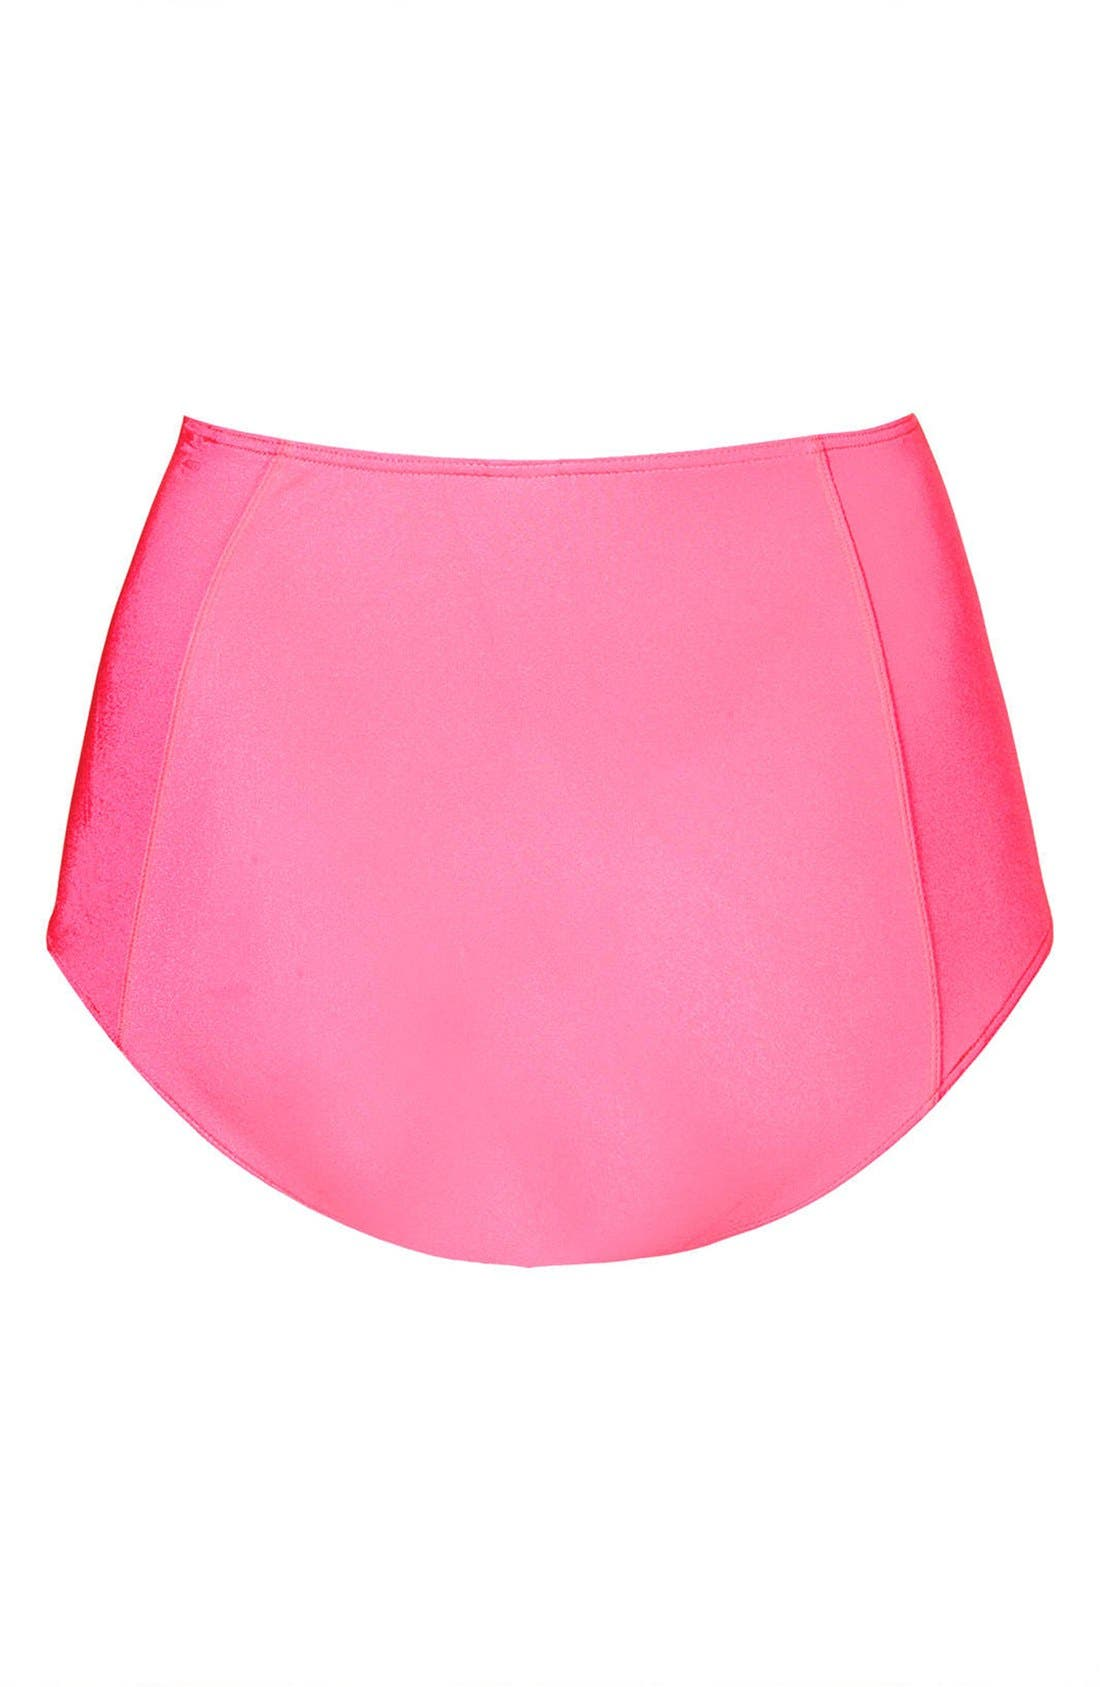 Alternate Image 2  - Topshop High Waist Bikini Bottoms